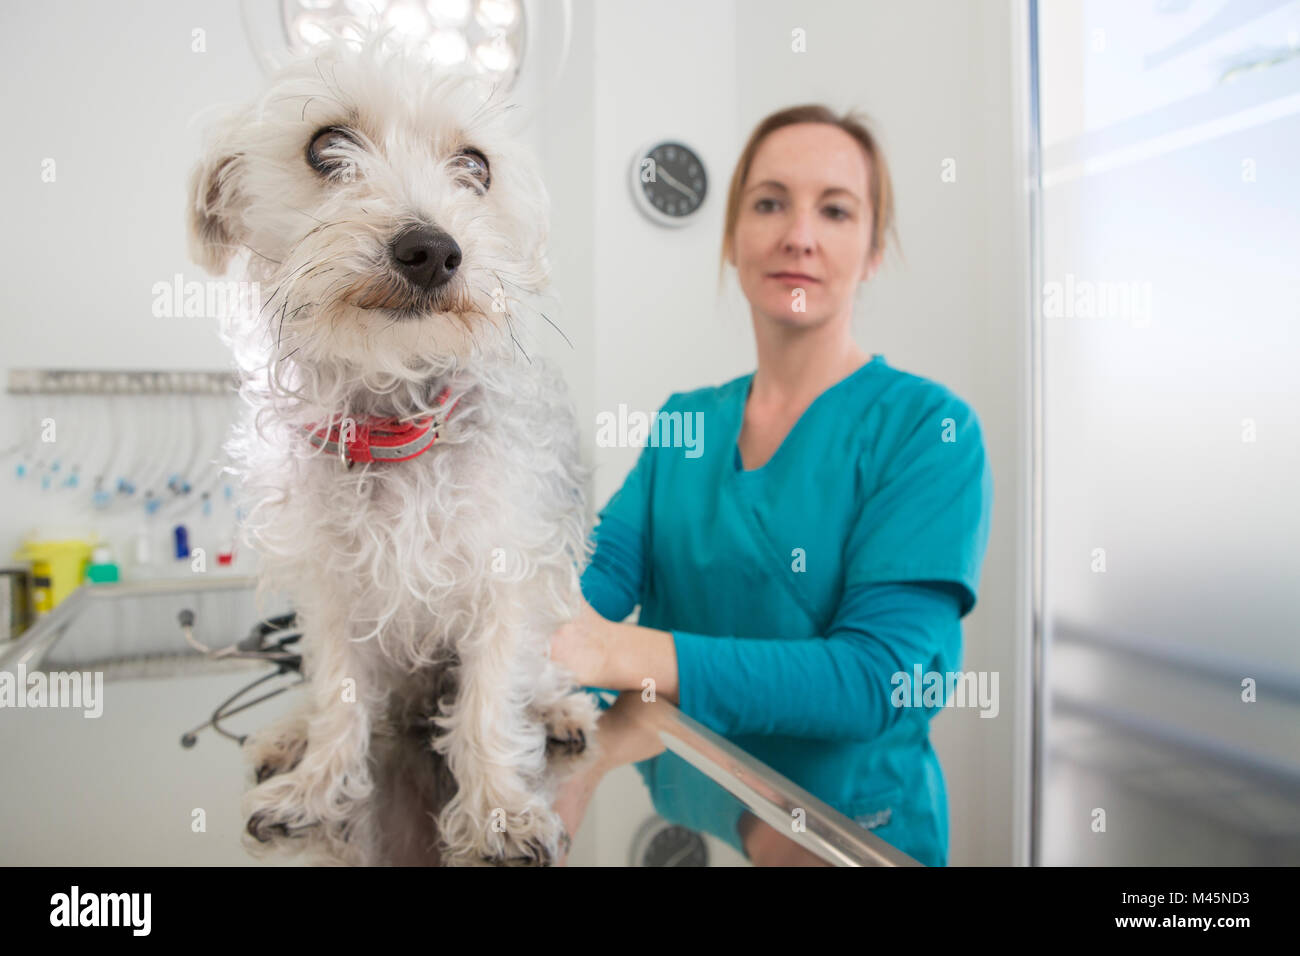 Vet with terrier poodle mixed breed dog on table - Stock Image